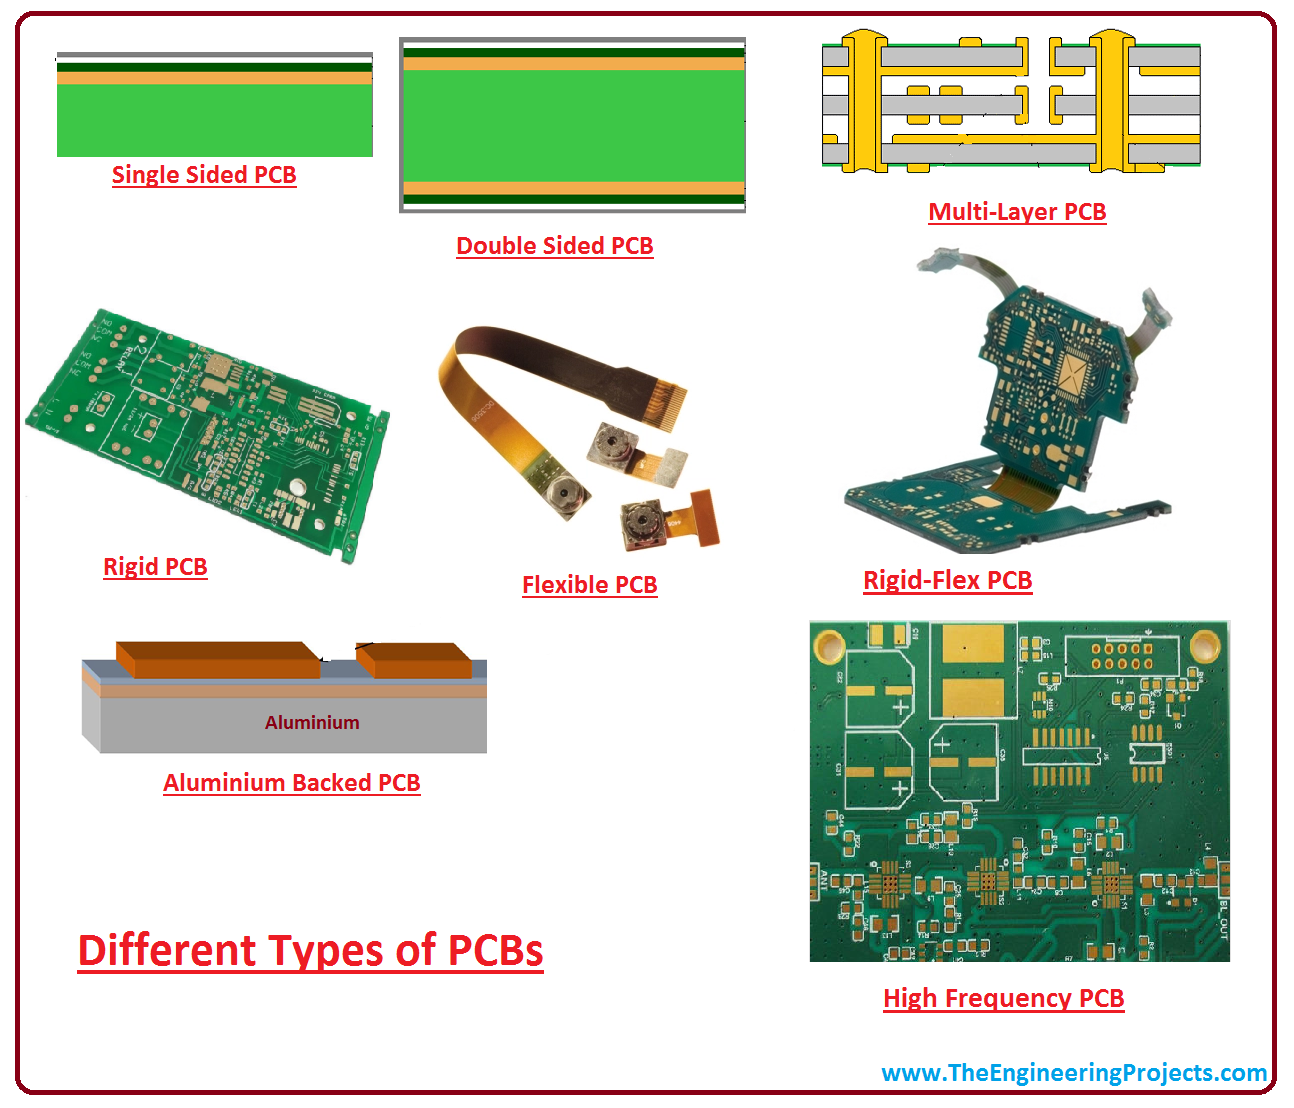 Materials for Rigid and Flexible Printed Wiring Boards (Electrical and Computer Engineering)